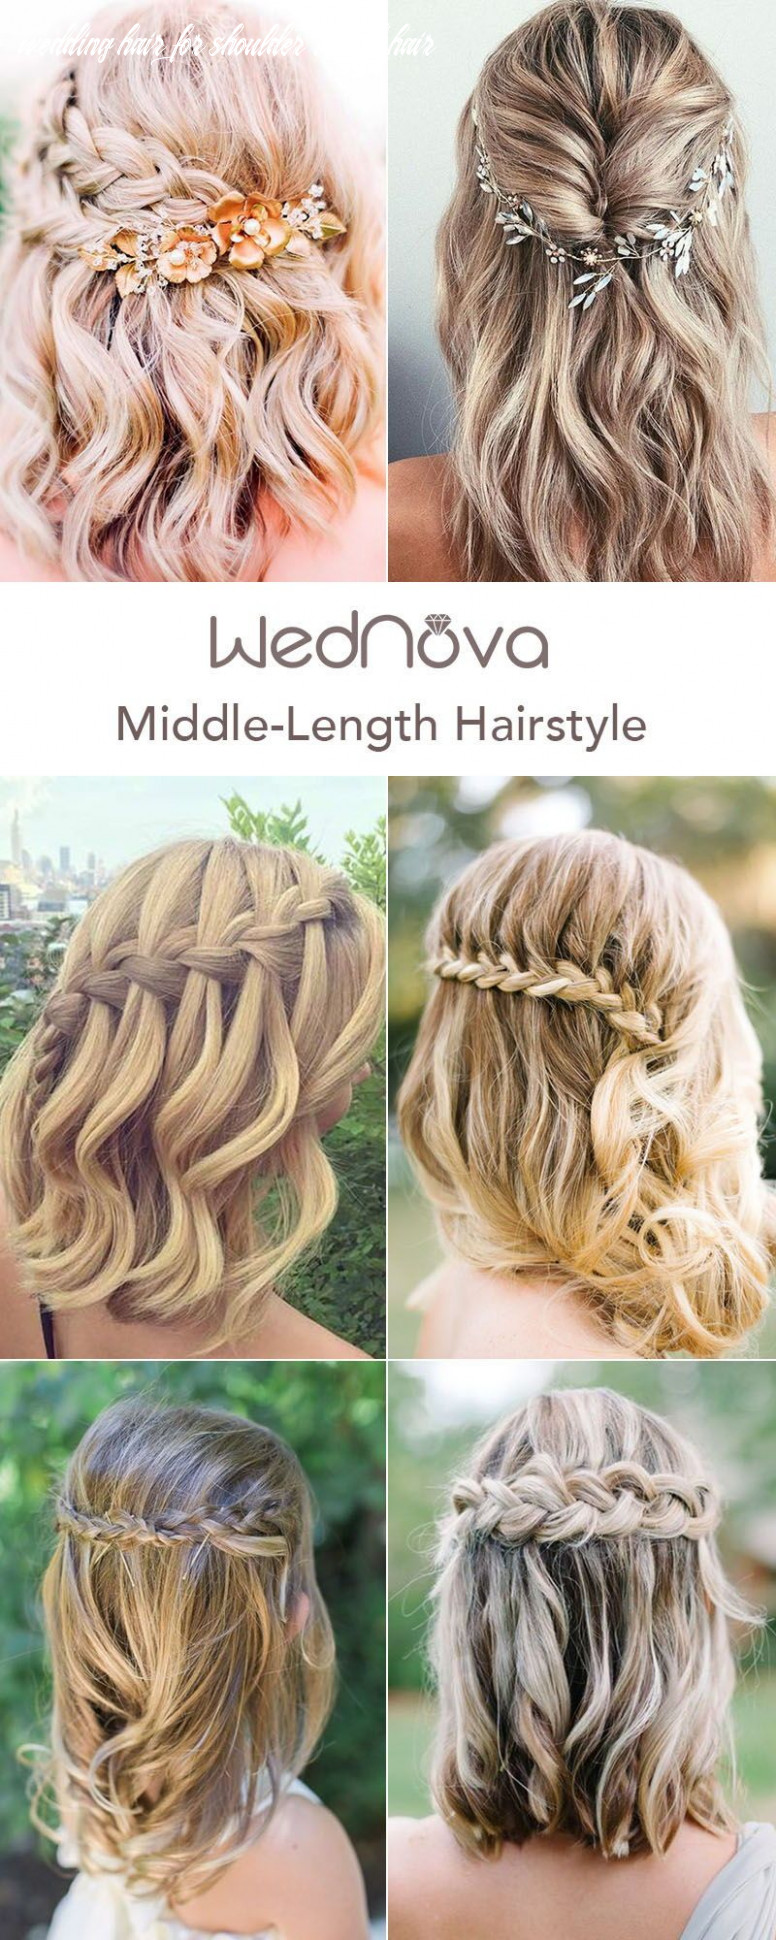 11 easy wedding hairstyles best guide for your bridesmaids in 11